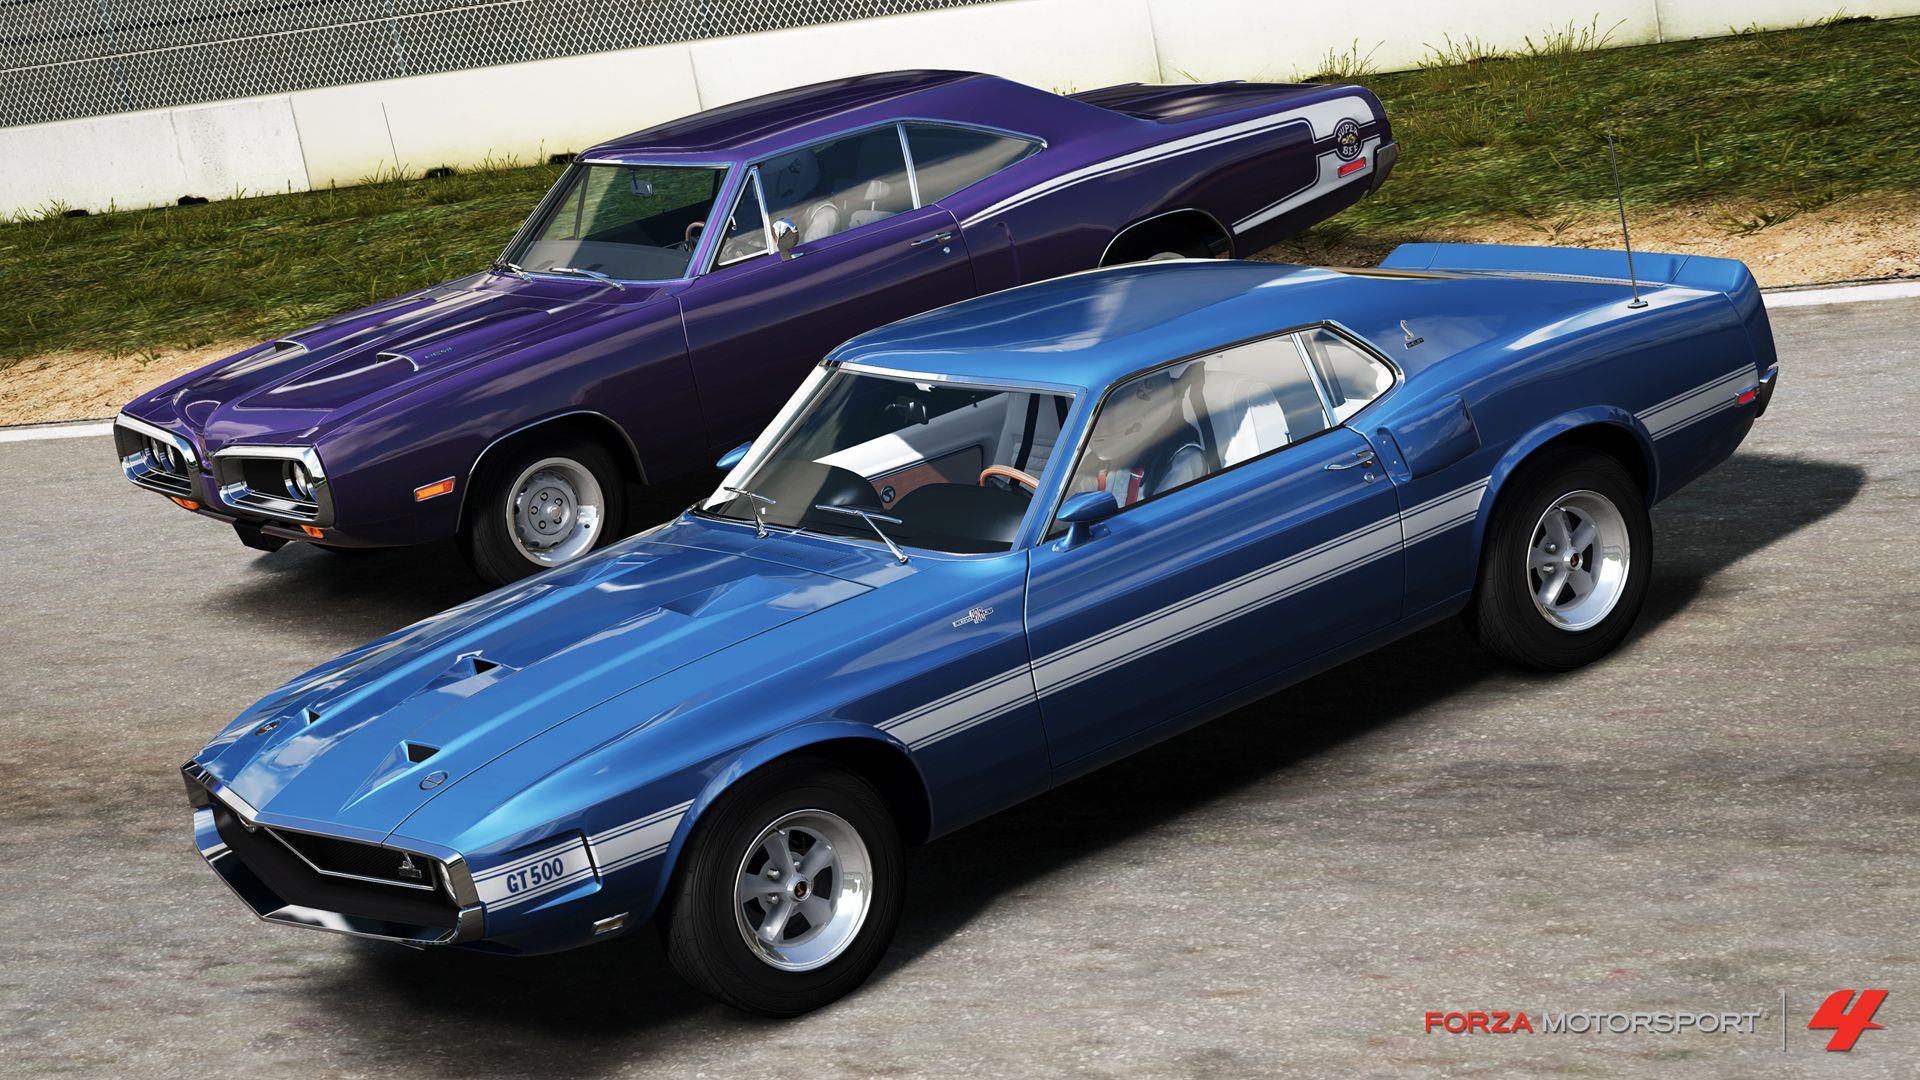 Top American Muscle Cars List | Forza Motorsport 4 Demo Date ...